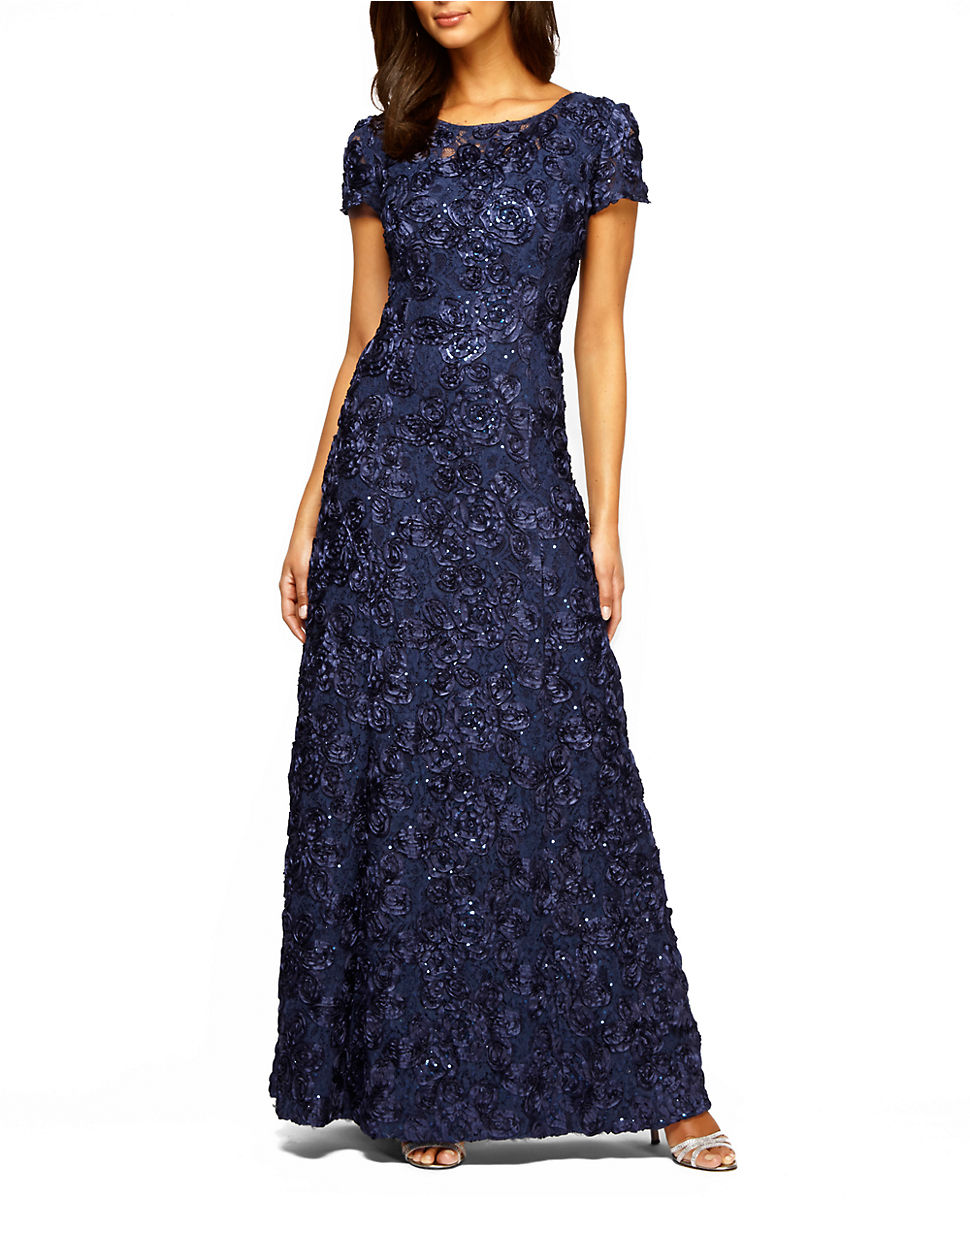 Long Evening Dresses Lord And Taylor - Plus Size Dresses